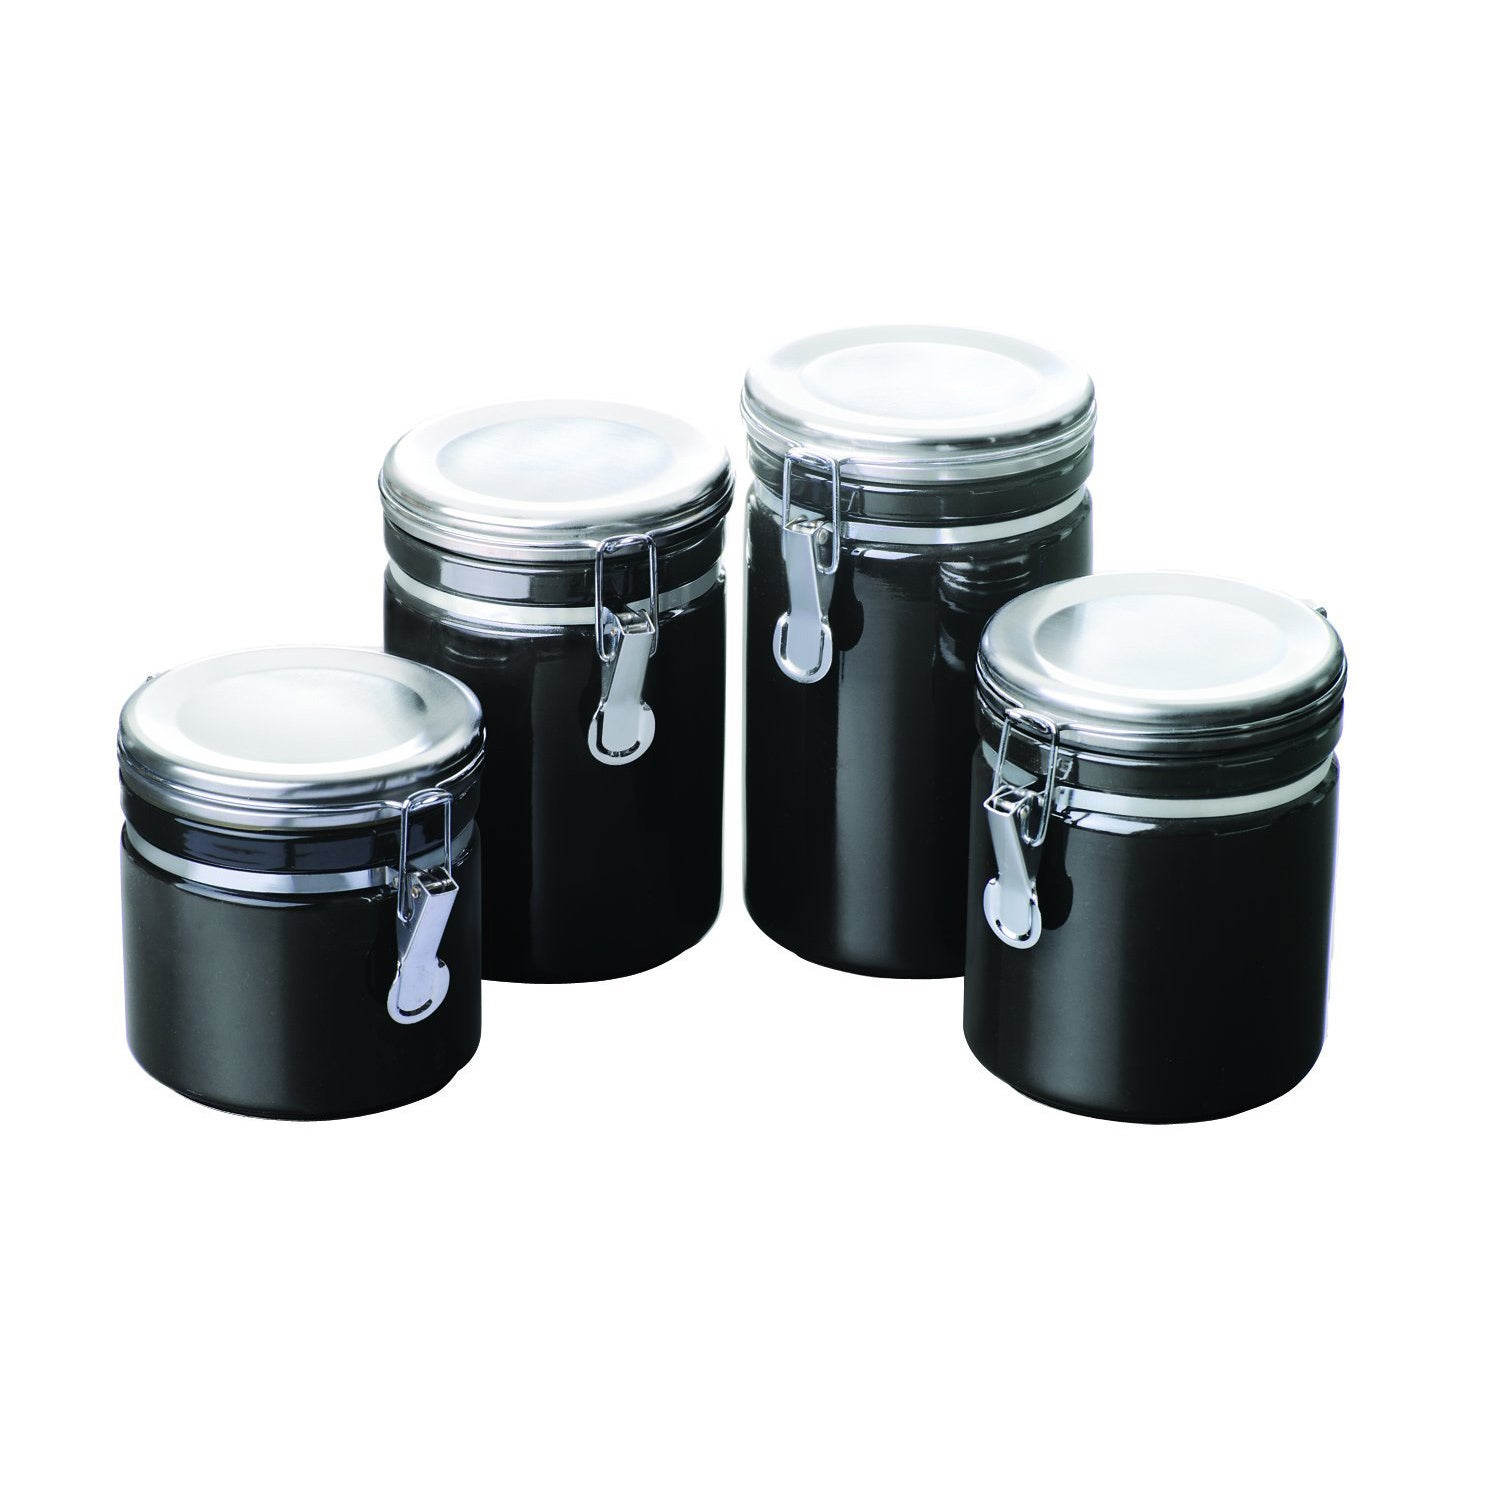 28 kitchen canisters black omni simsbury extra large